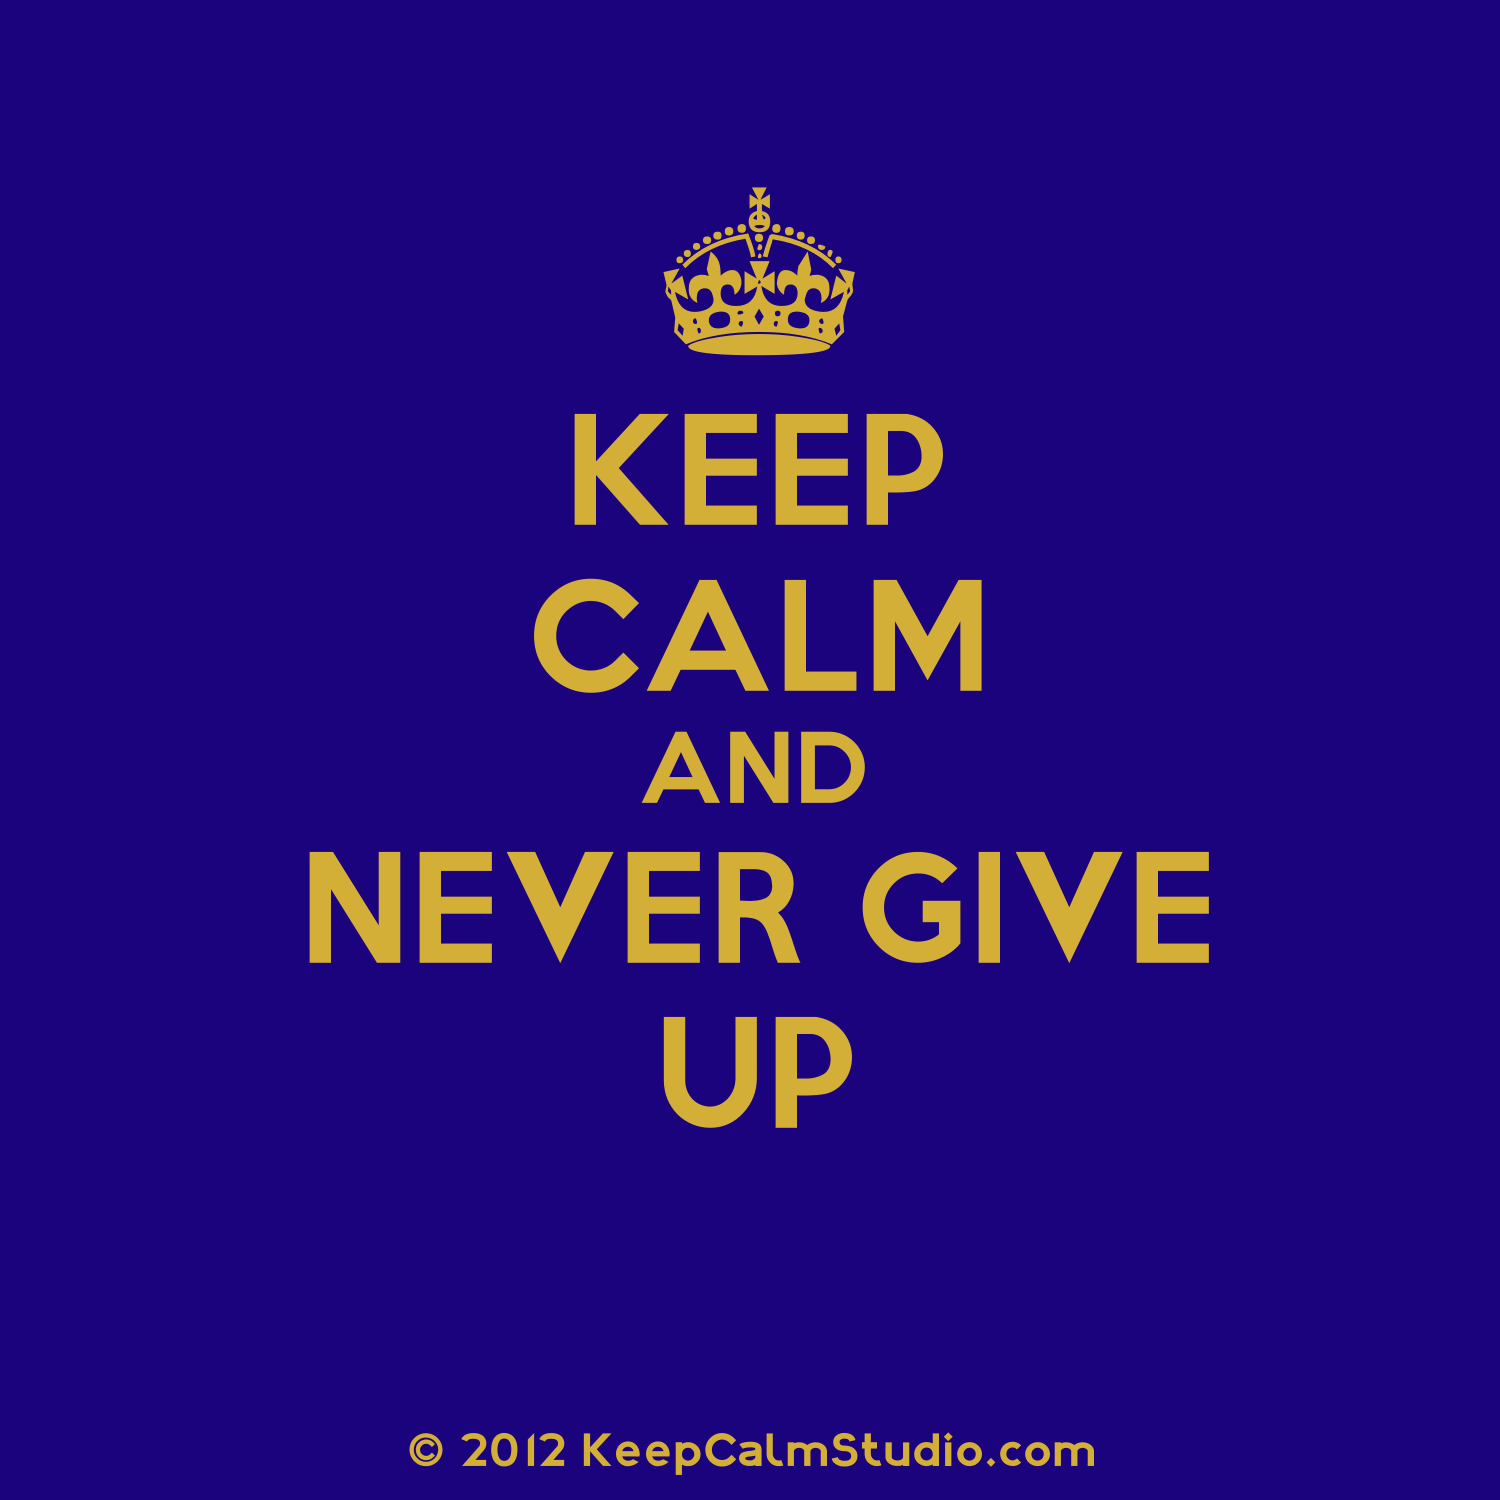 Keep Calm Never Give Up Meaning In Urdu Gastronomia Y Viajes